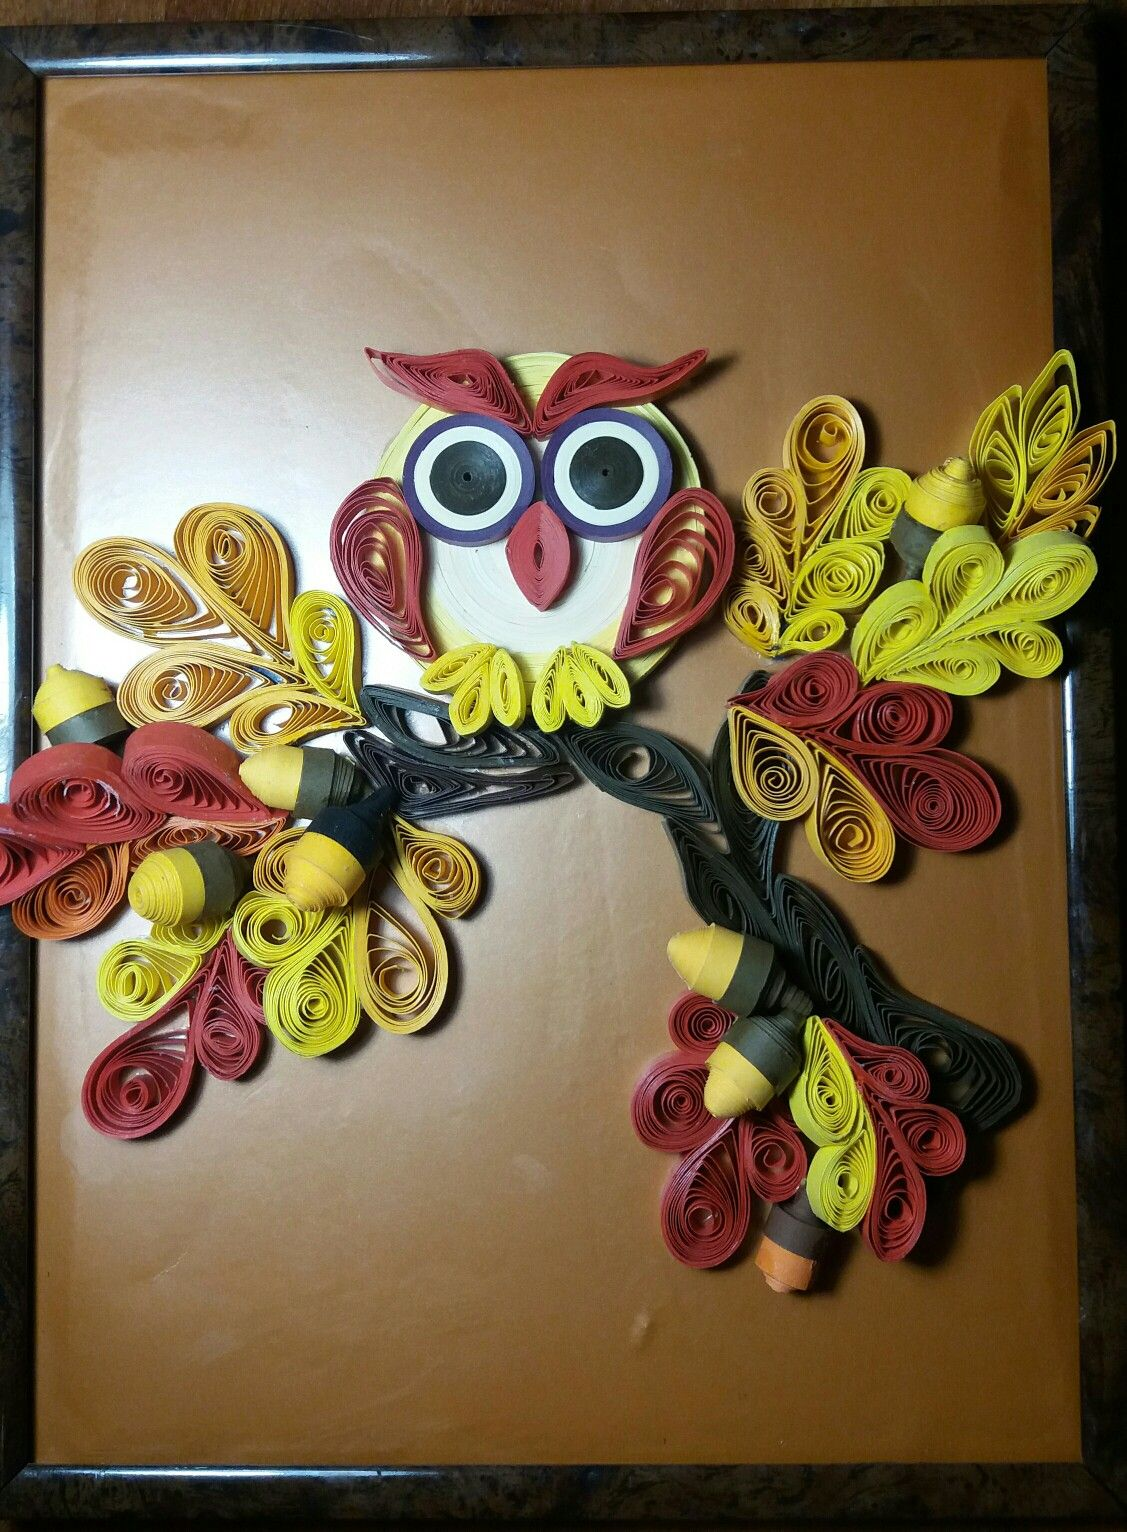 Pin by on qulling pinterest quilling paper quilling designs paper quilling cardboard paper insects origami rolled paper papercraft owls cards jeuxipadfo Image collections